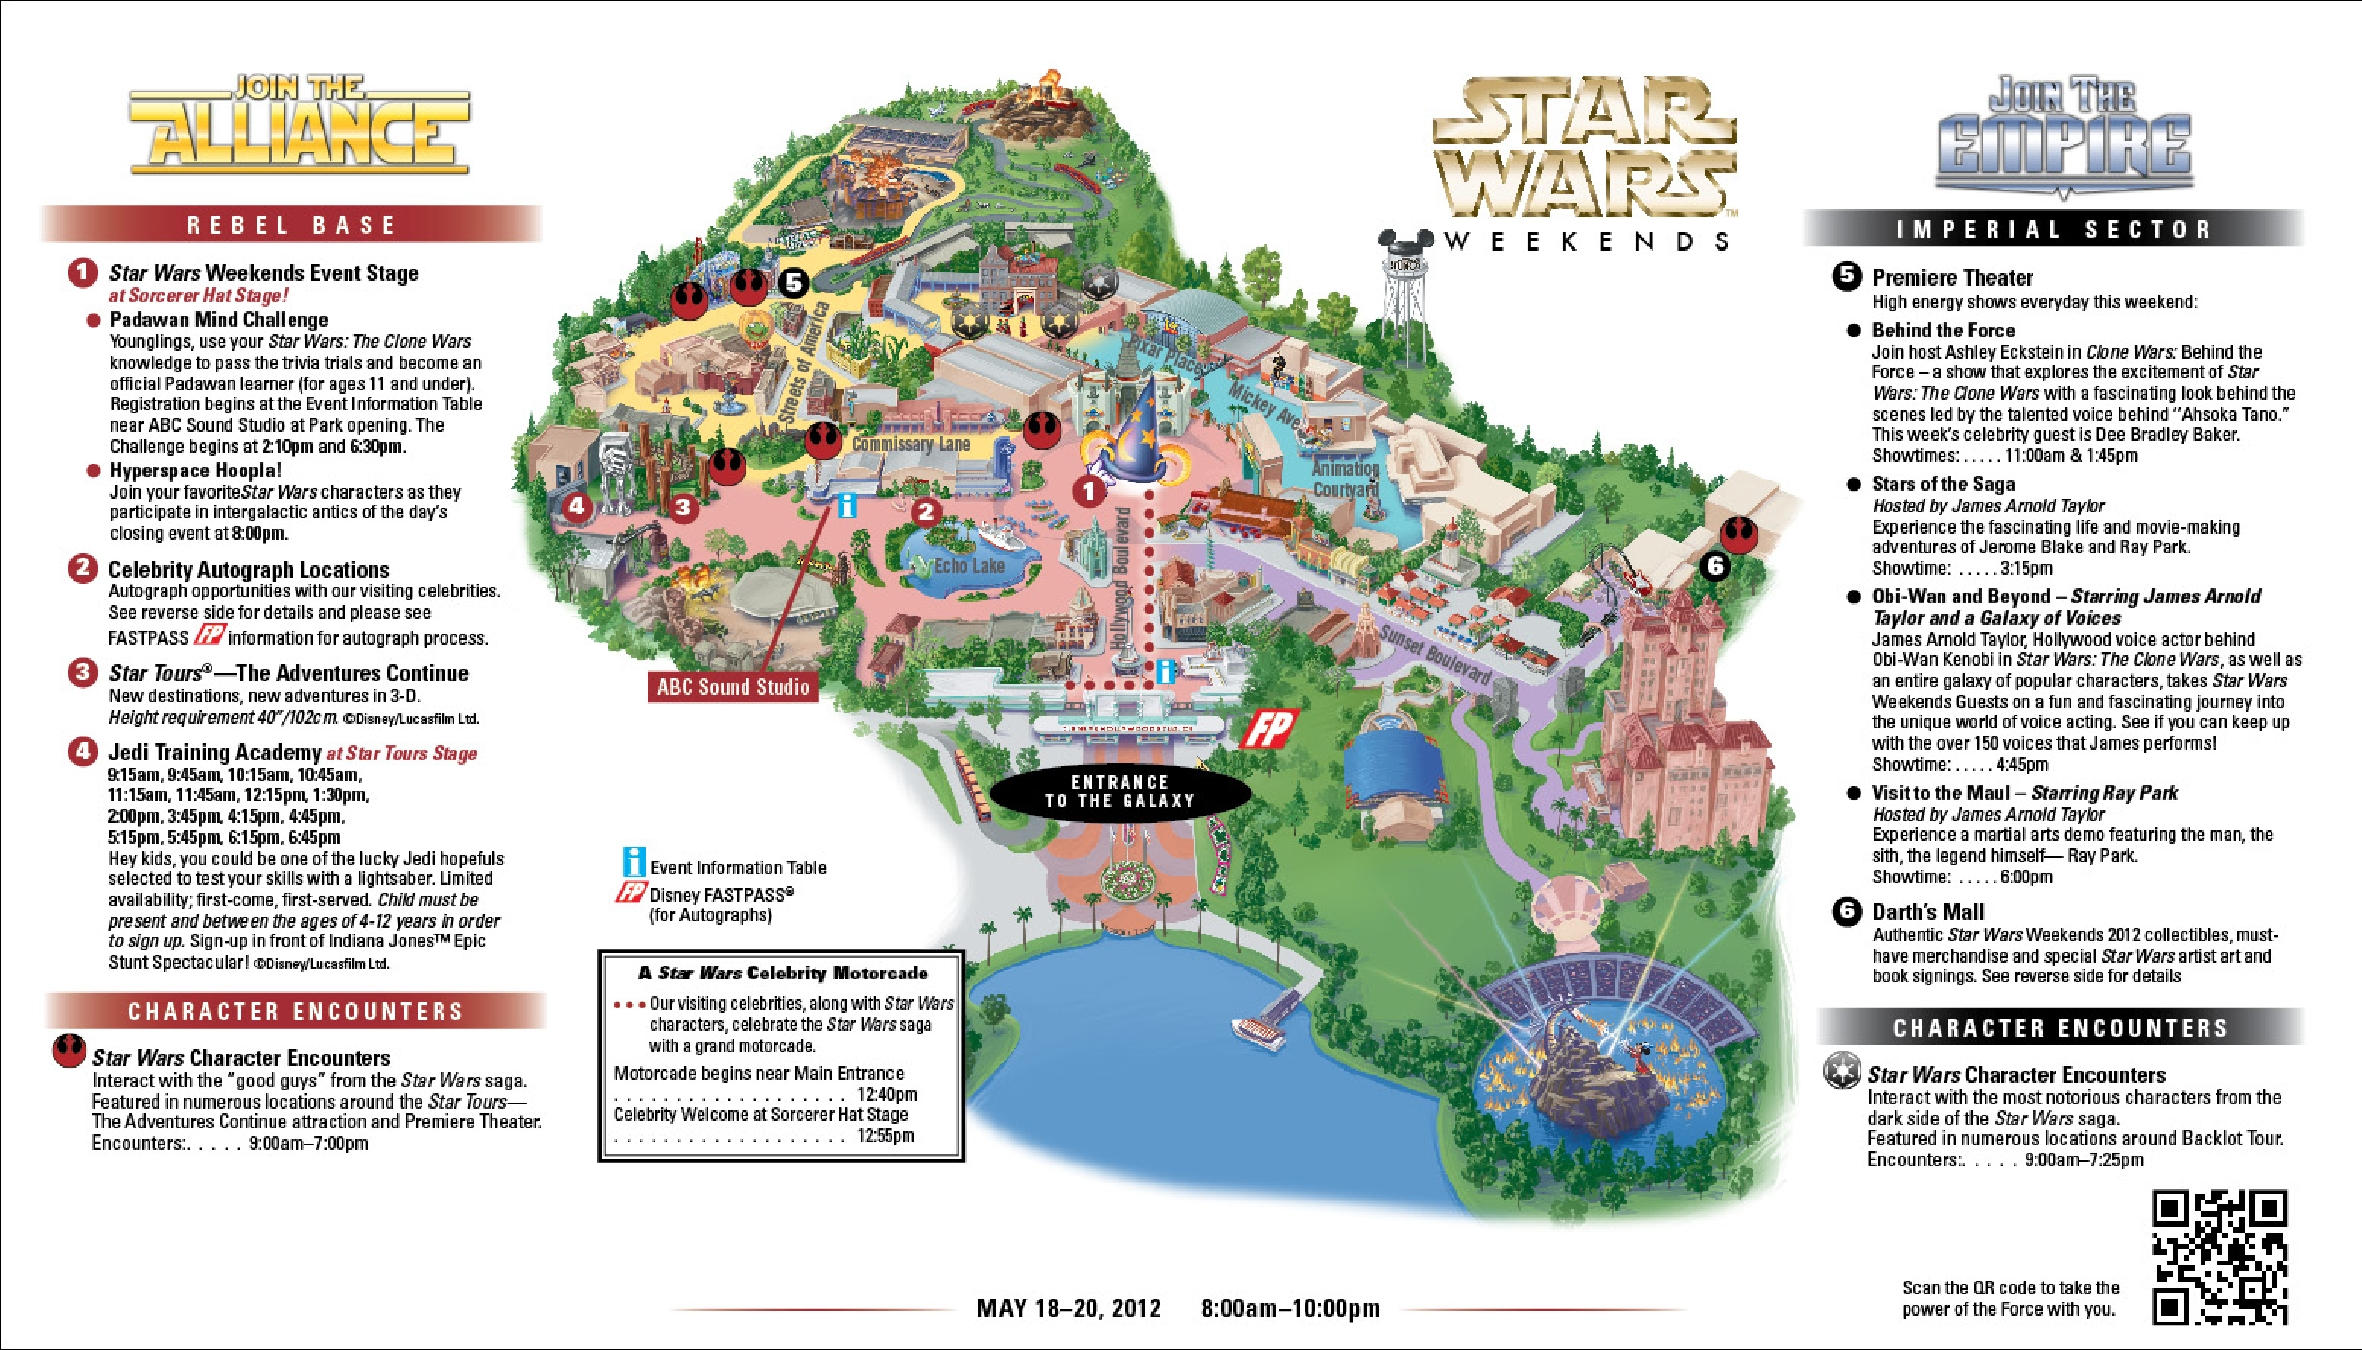 Star Wars Weekends Schedule Released – Finally!